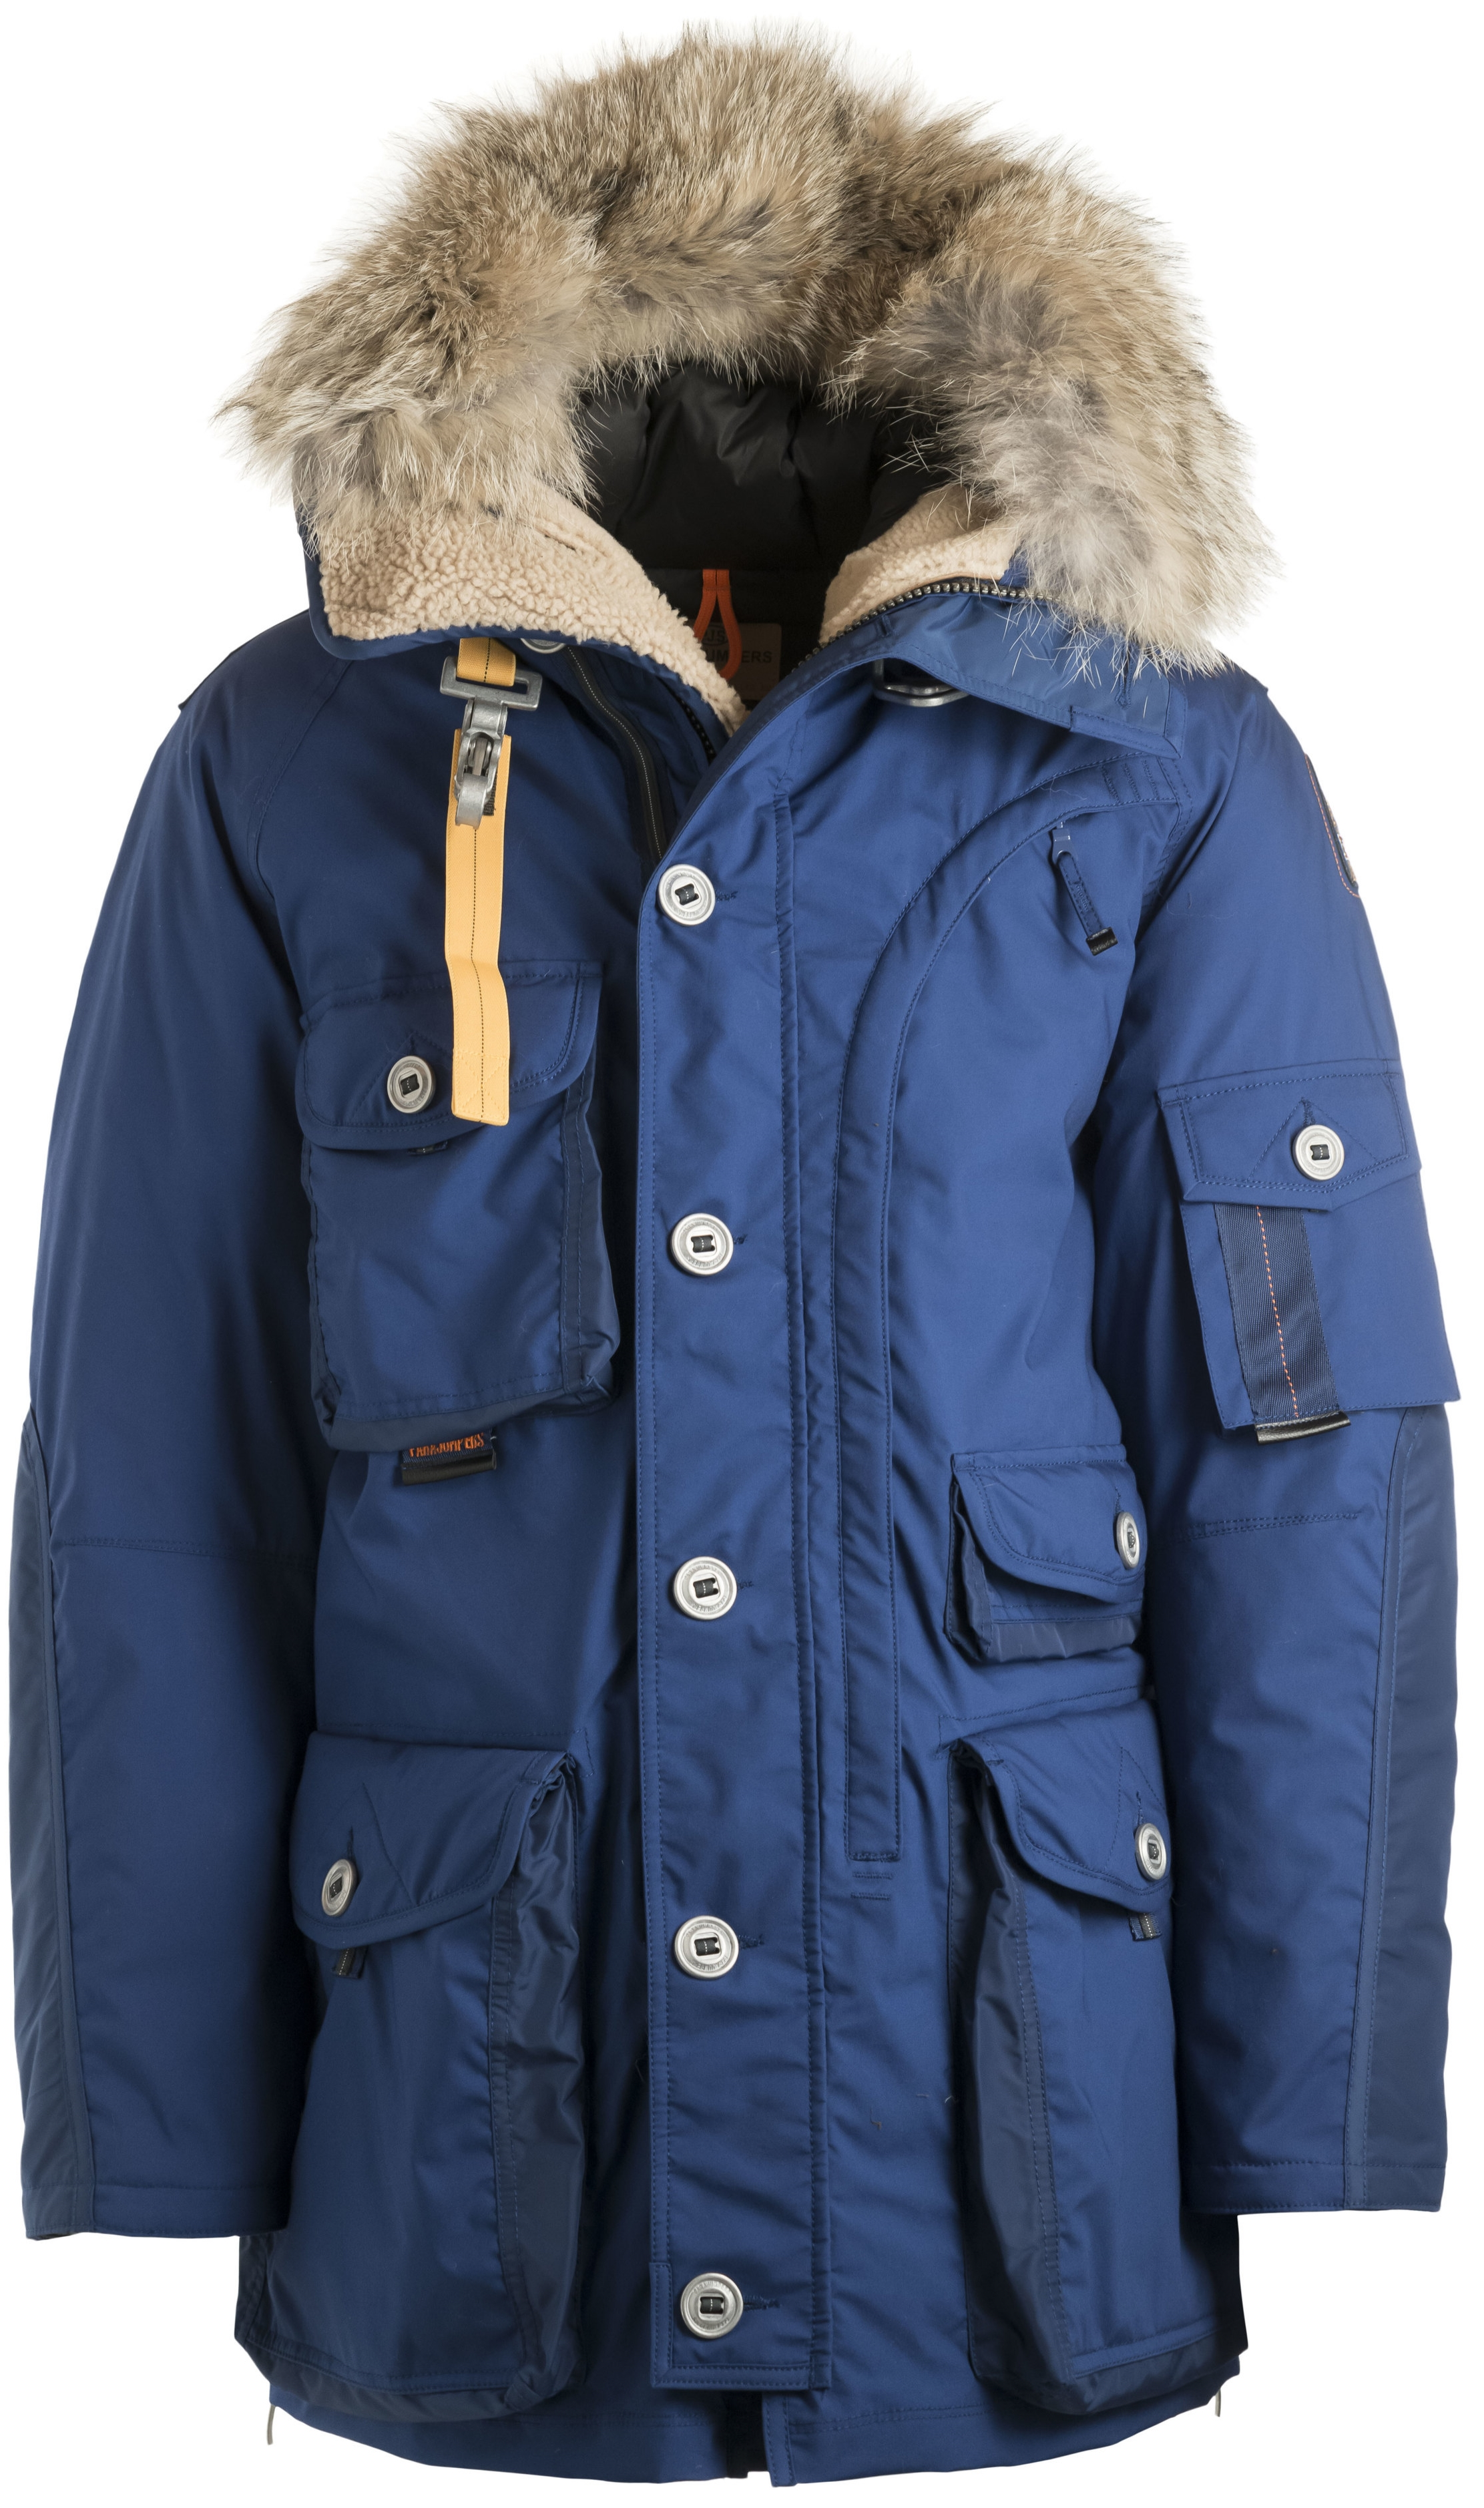 ParaJumpers Musher Coat, $1,740